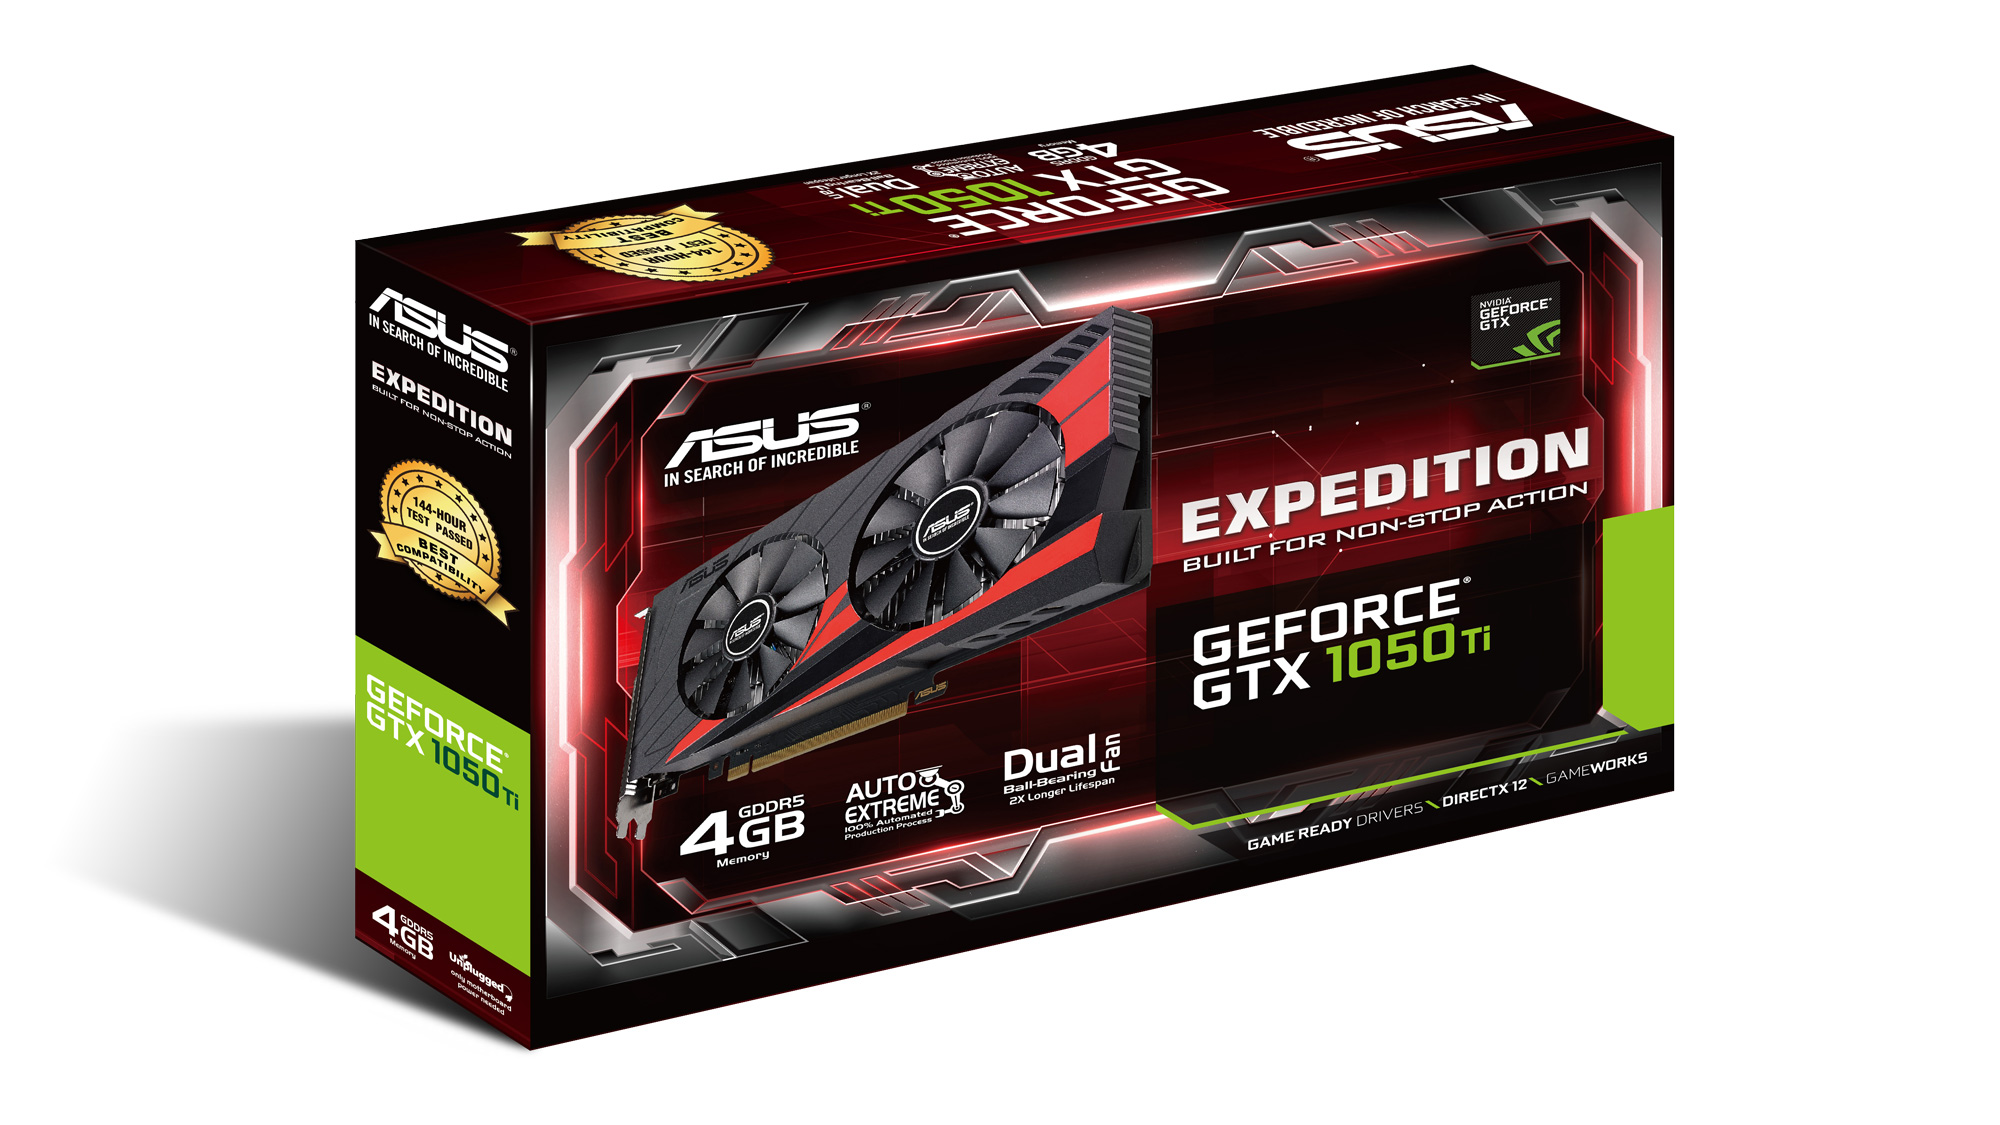 ASUS Expedition GTX 1050 Ti | ROG - Republic of Gamers Global